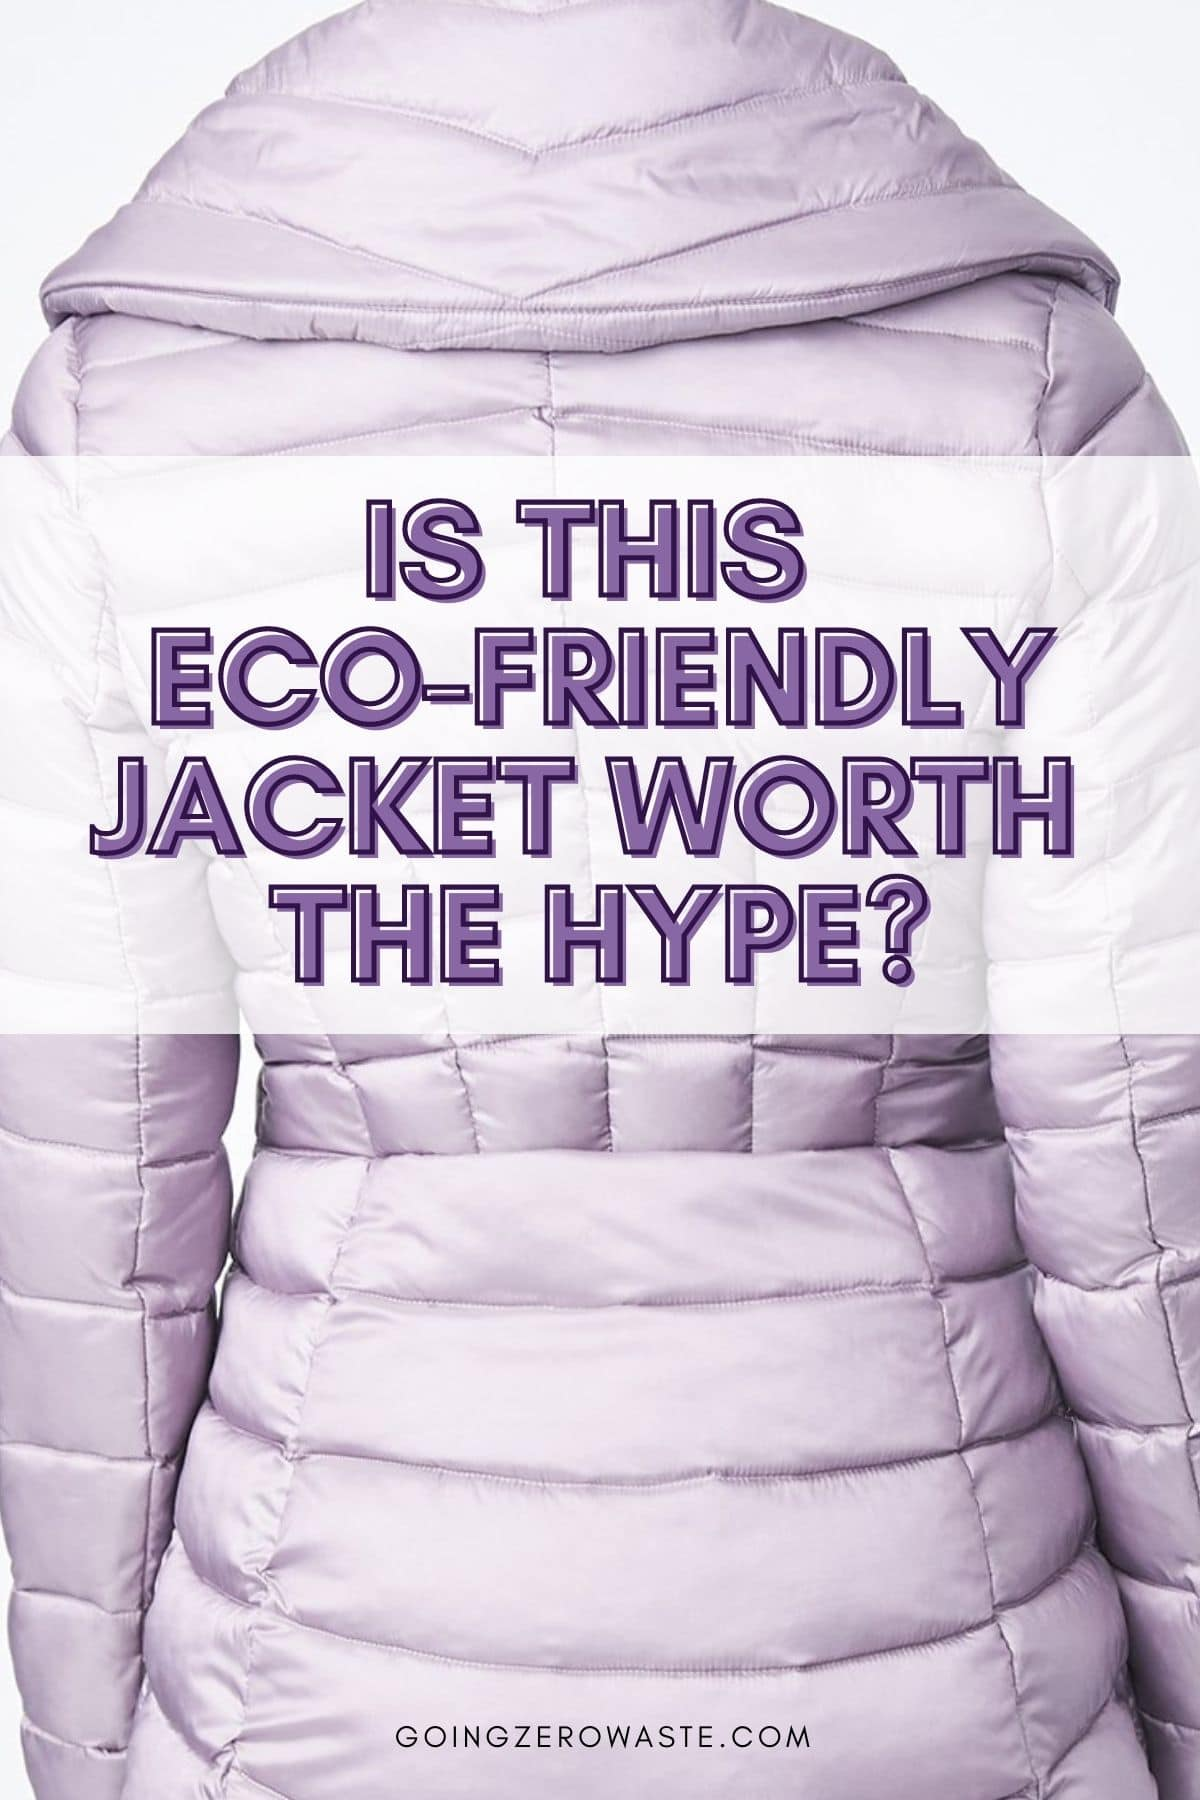 Bernardo Coat Review - Is this Eco-Friendly Jacket Worth the Hype?